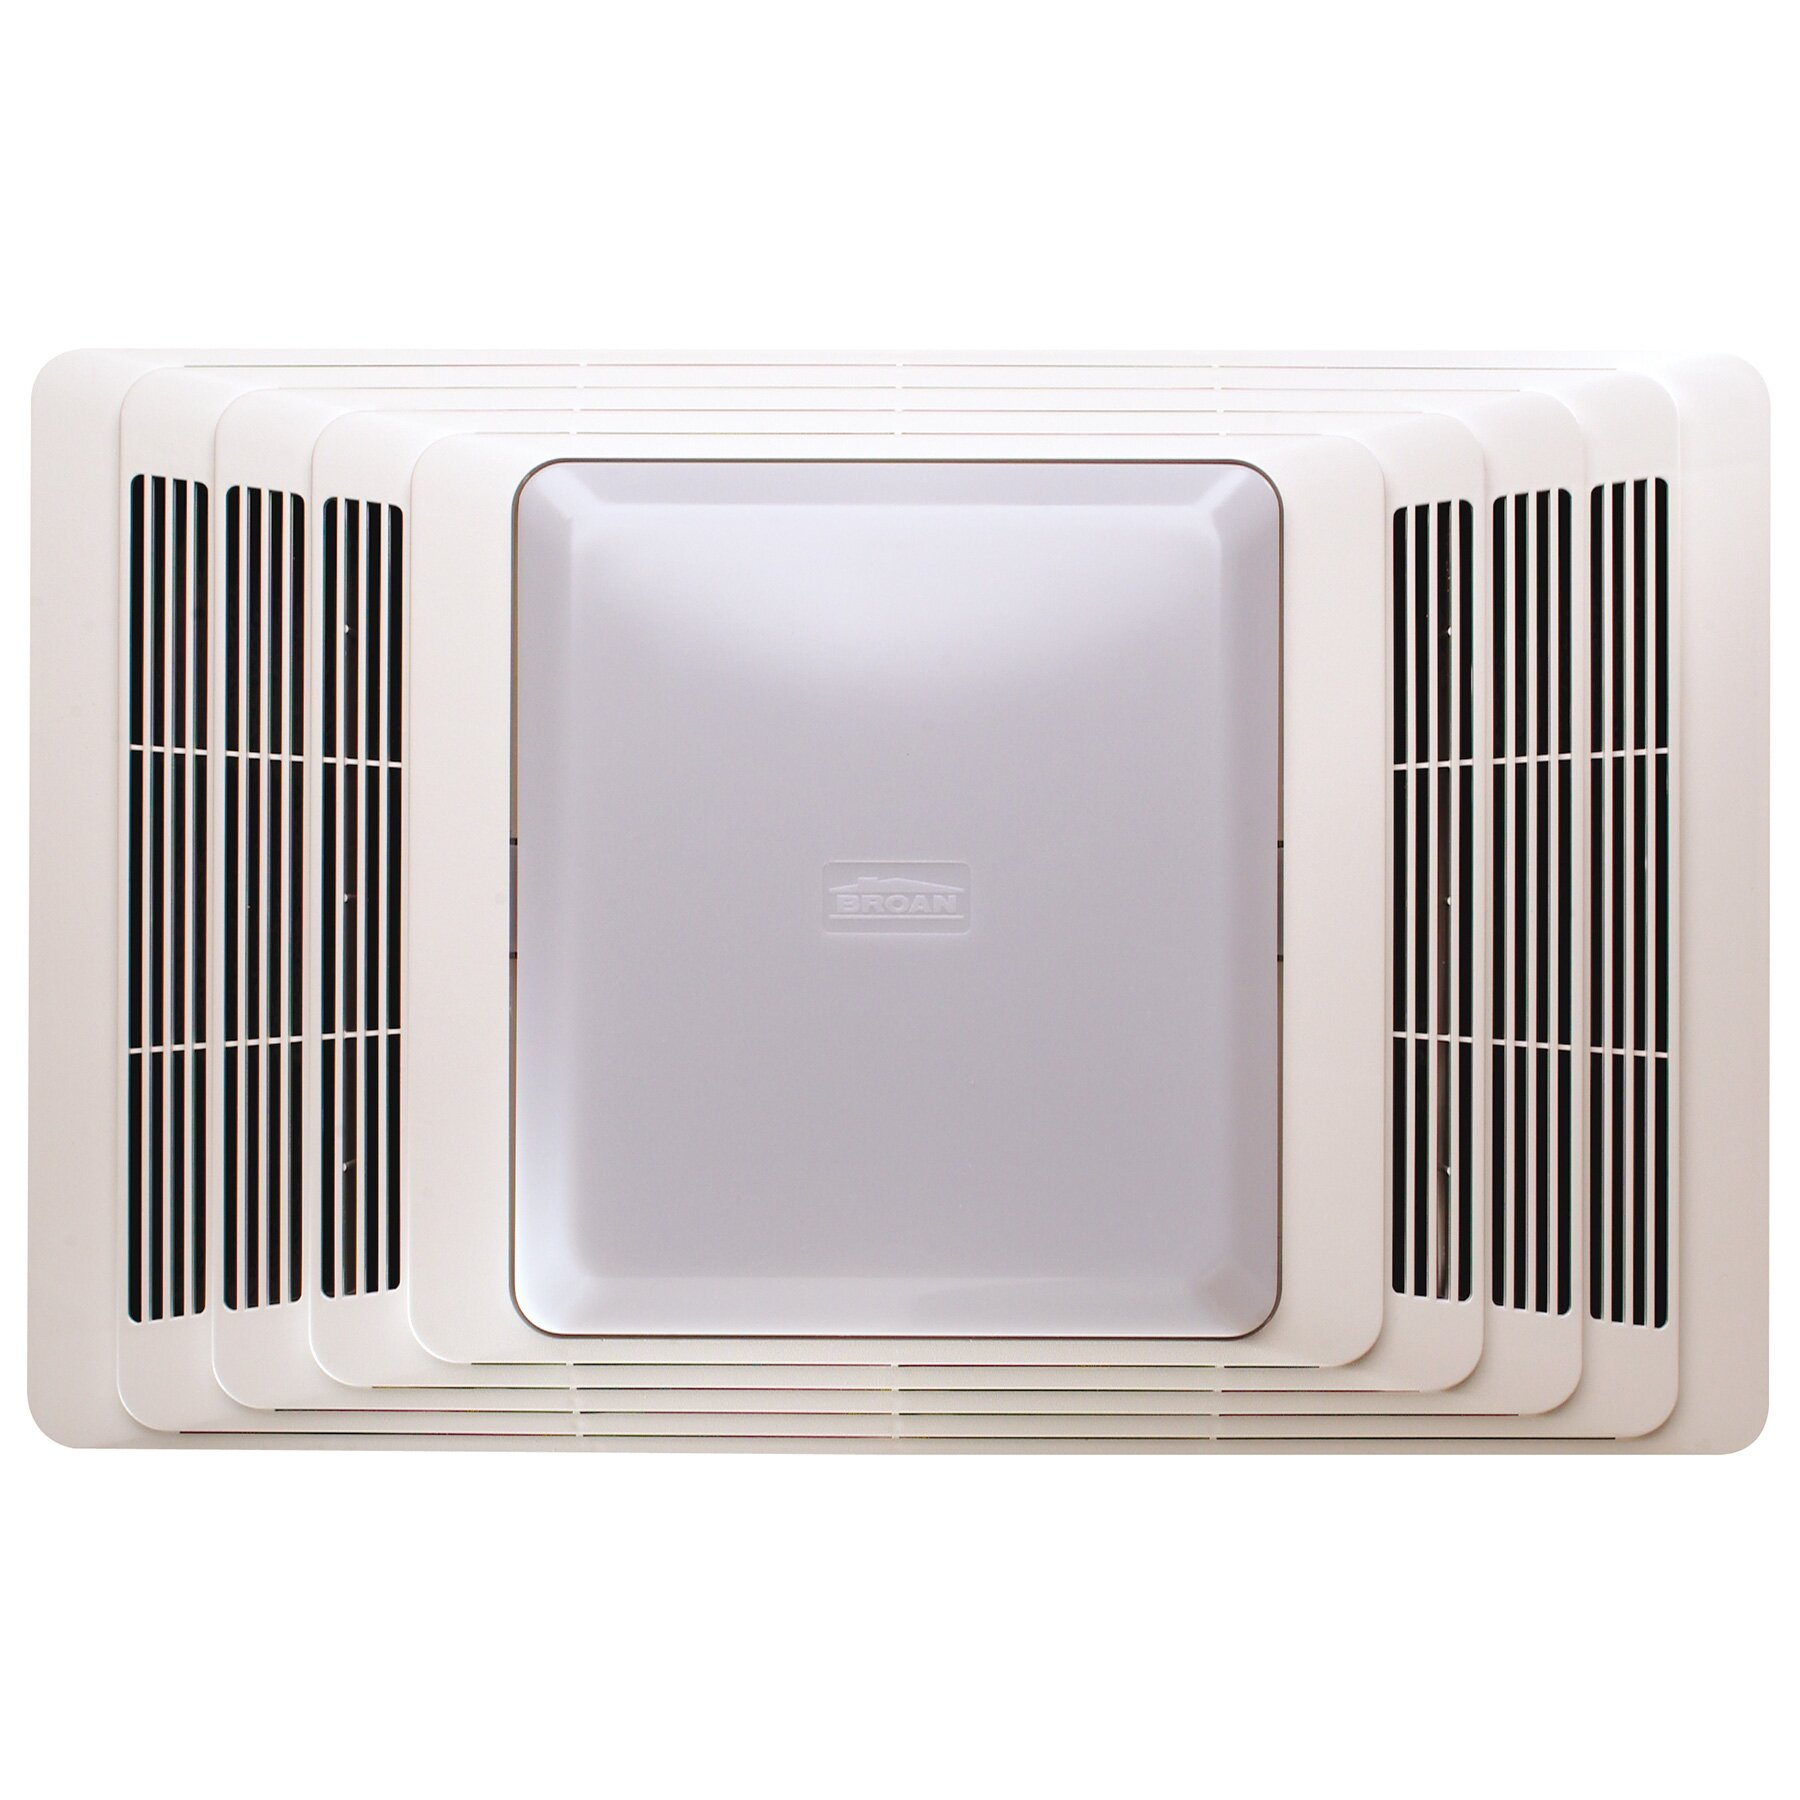 broan 70 cfm bathroom fan with light reviews wayfair. Black Bedroom Furniture Sets. Home Design Ideas